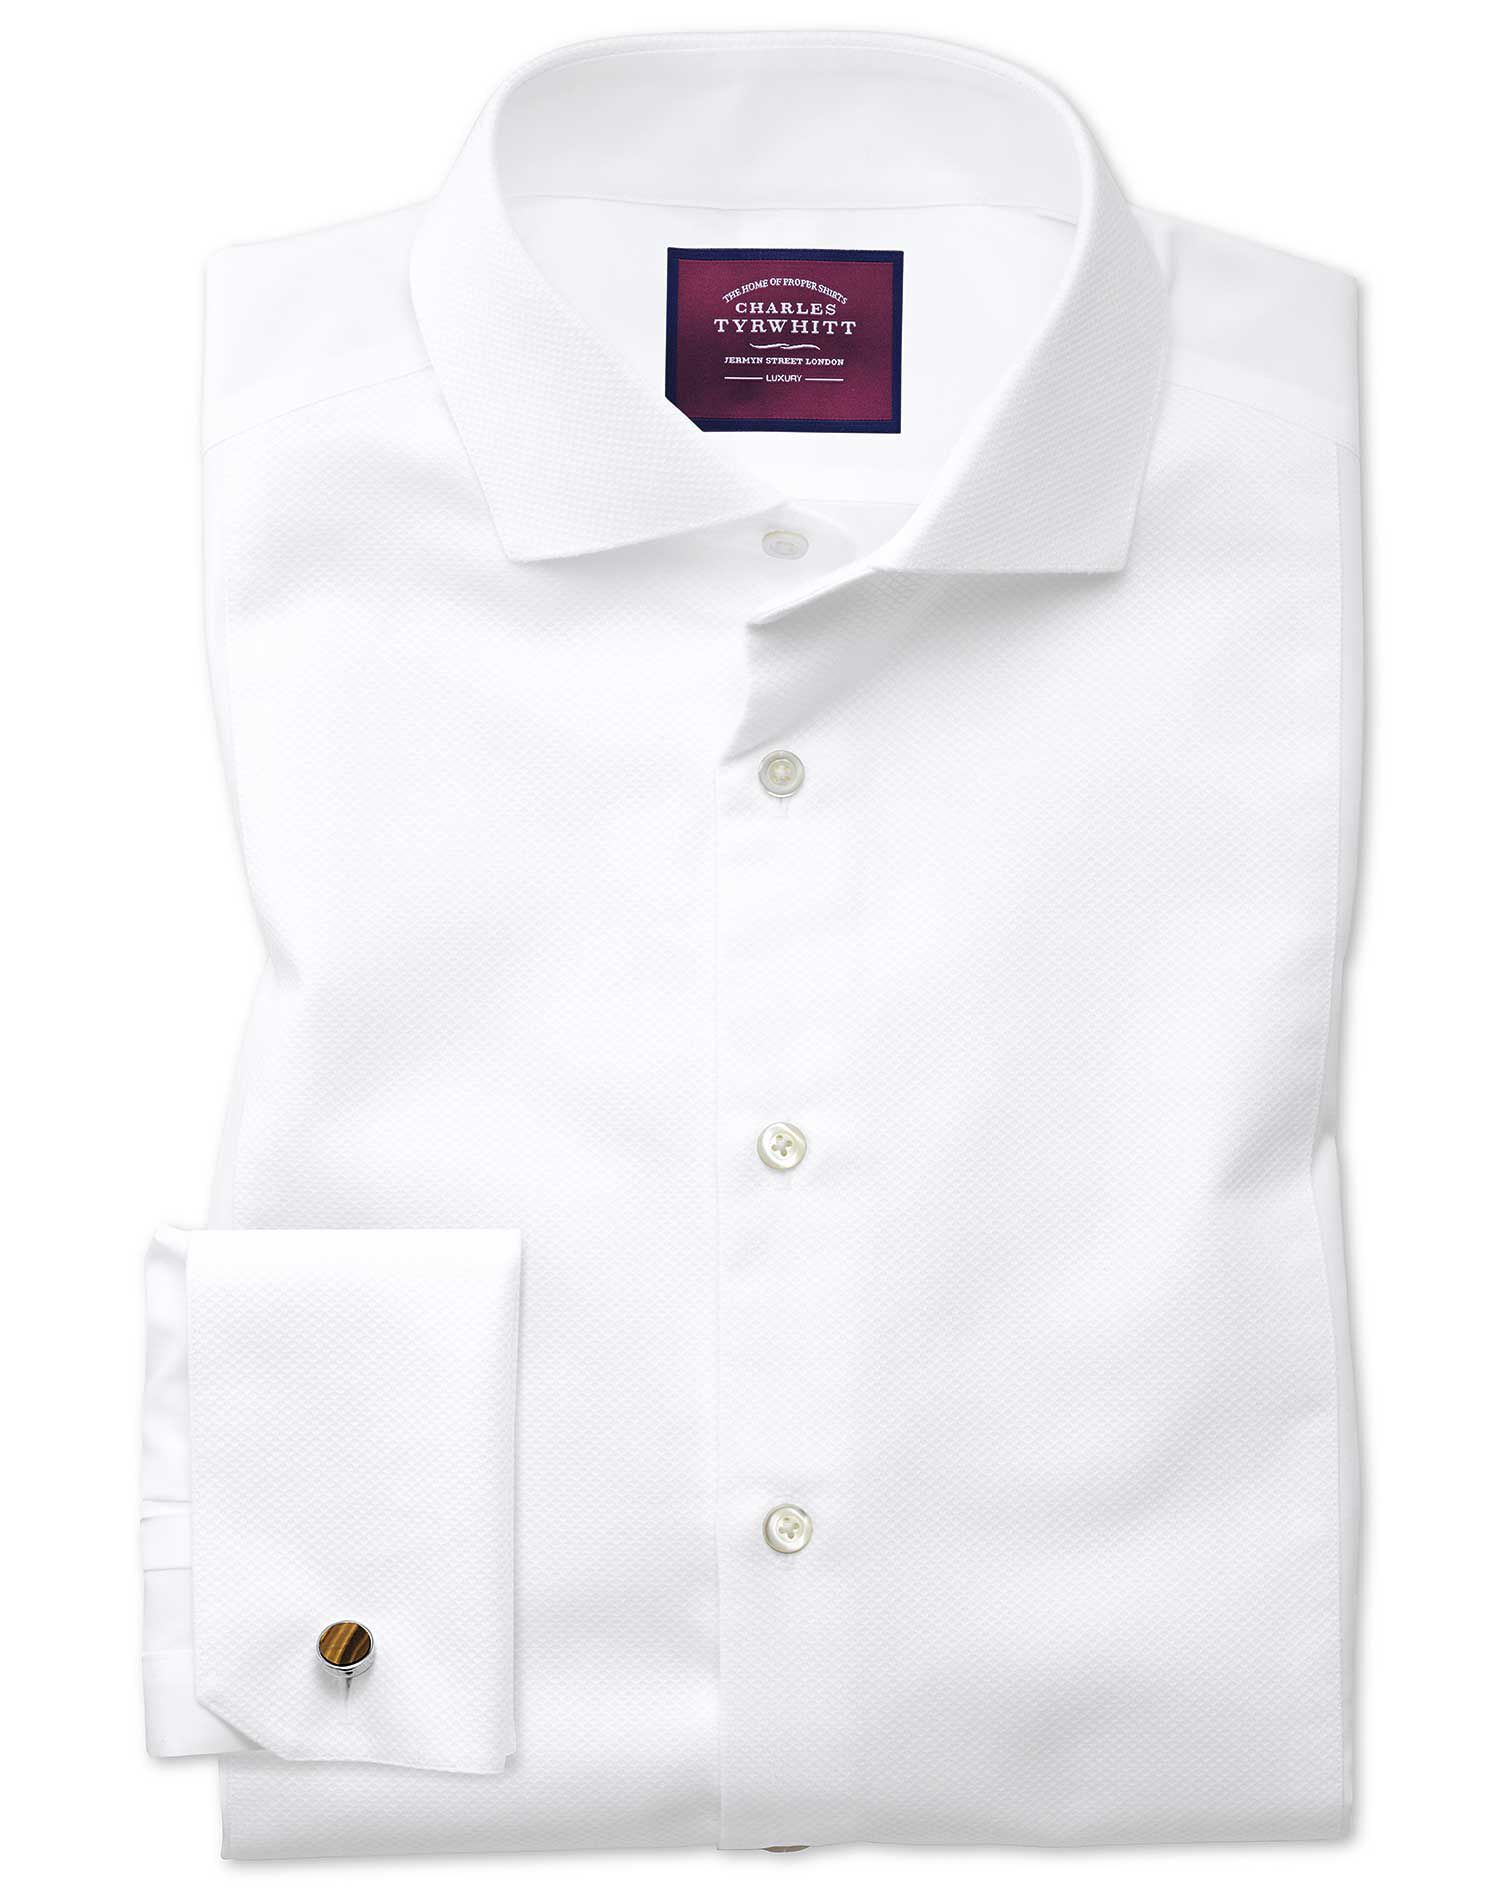 Slim Fit Cutaway Non-Iron Luxury White Cotton Formal Shirt Double Cuff Size 16/34 by Charles Tyrwhit